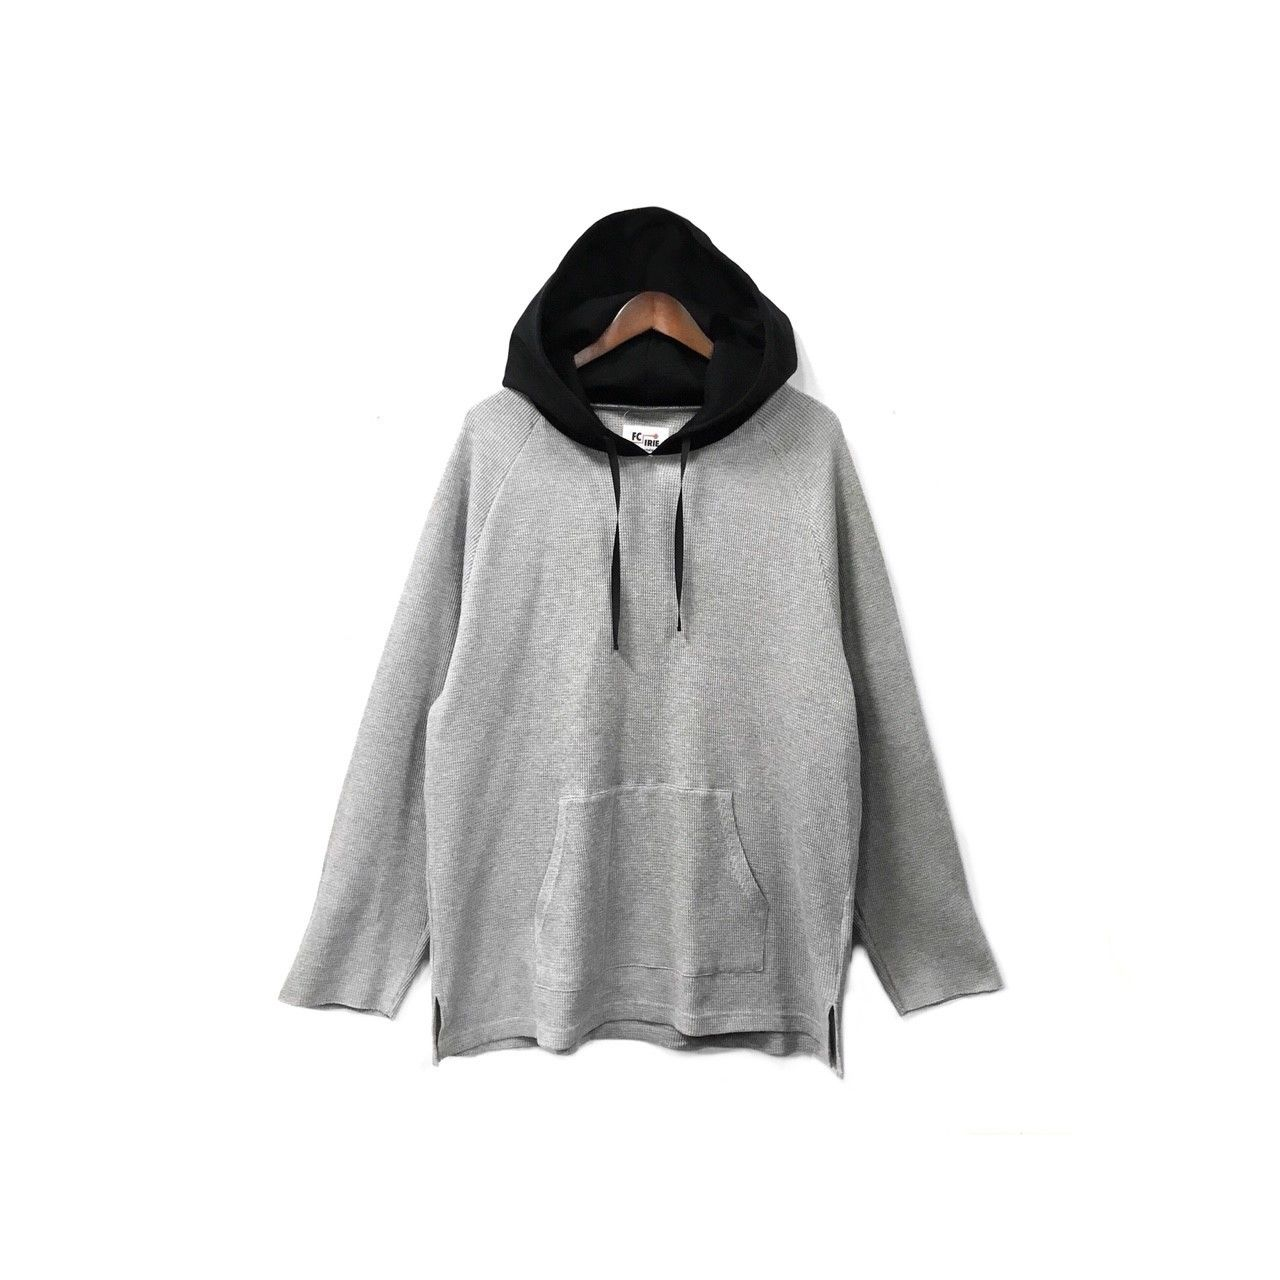 FC IRIE - Switching Thermal Parka / Gray・Black ?11000+tax